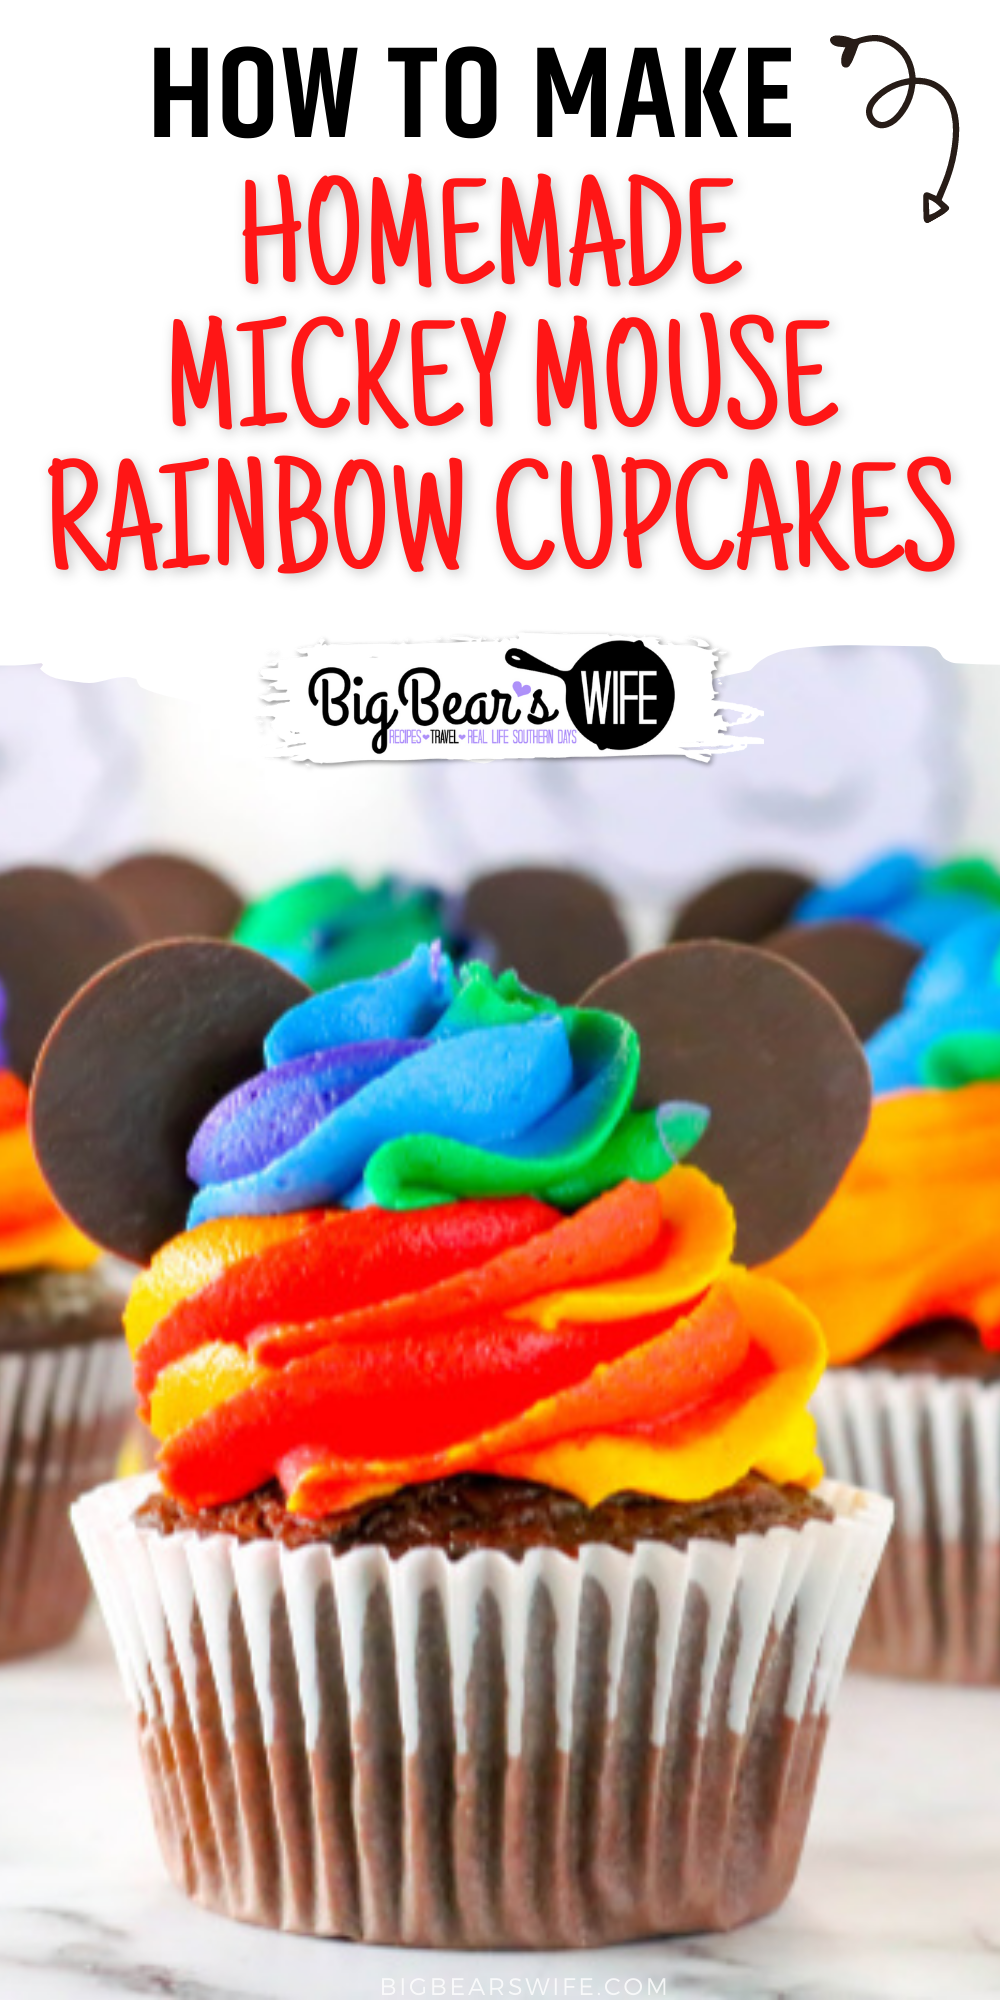 Combine the magic of Disney with the beauty of a rainbow with these adorable Homemade Mickey Mouse Rainbow Cupcakes! Inspired by the Mickey rainbow cupcakes sold at Walt Disney World, I'll show you how to make them at home! via @bigbearswife